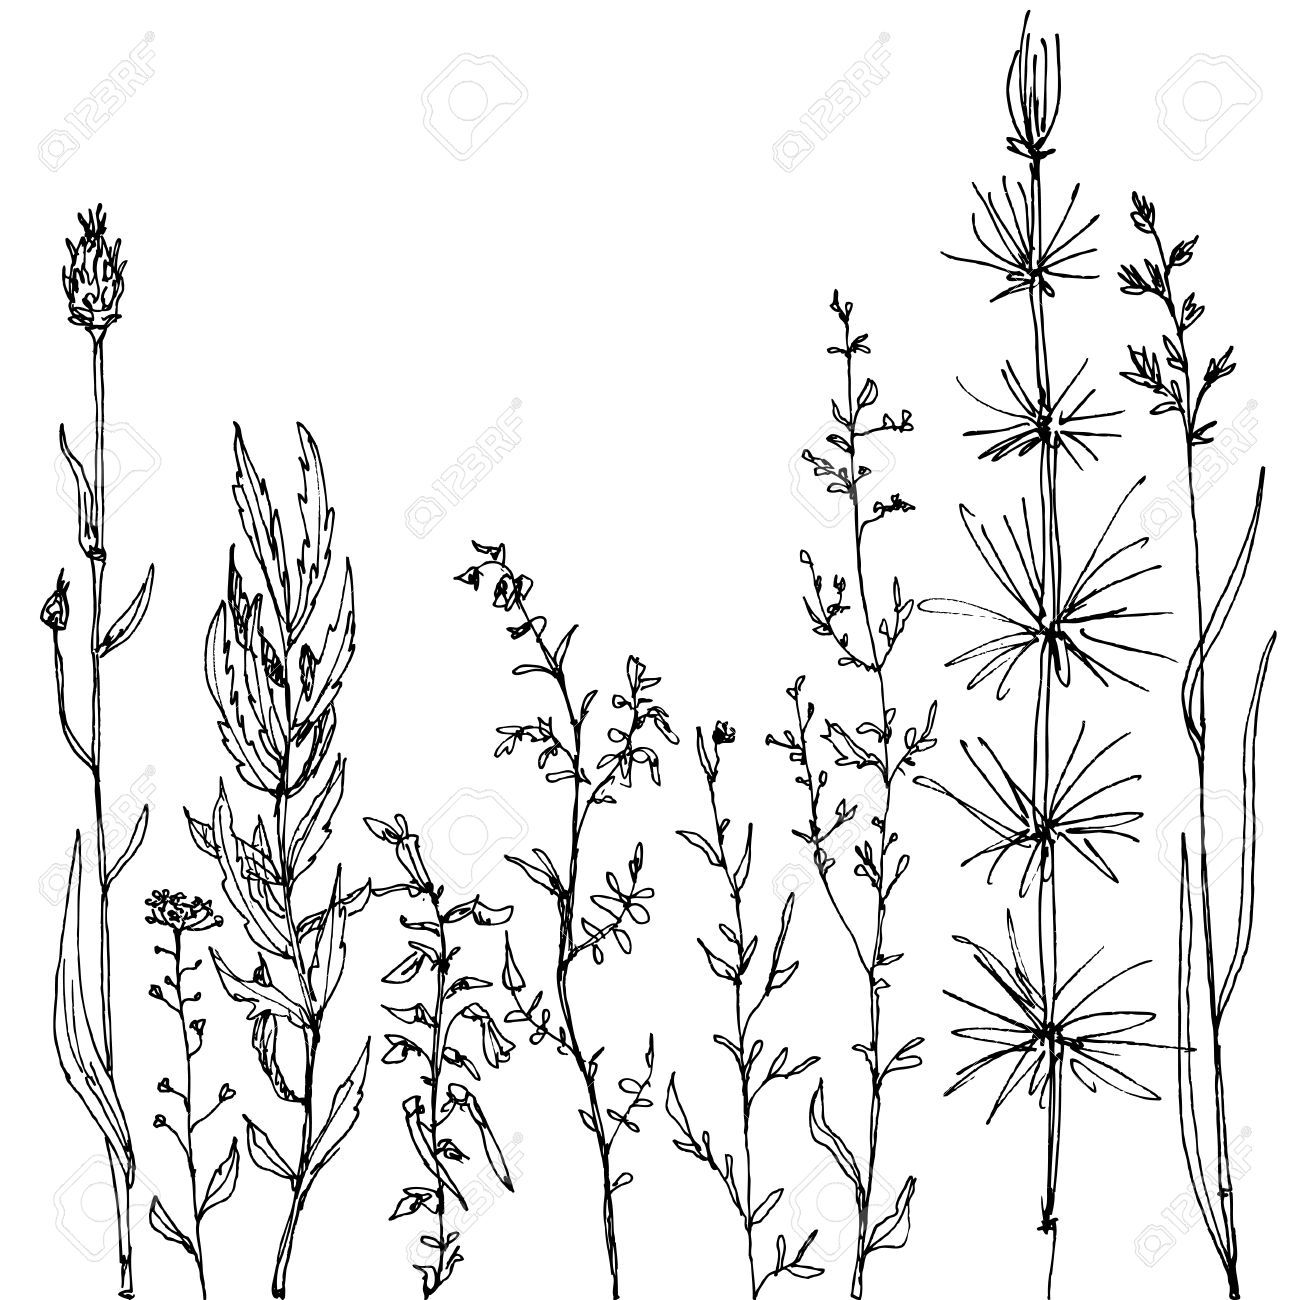 Line Art Flower Drawing : Wild flower floral composition with ink drawing herbs and